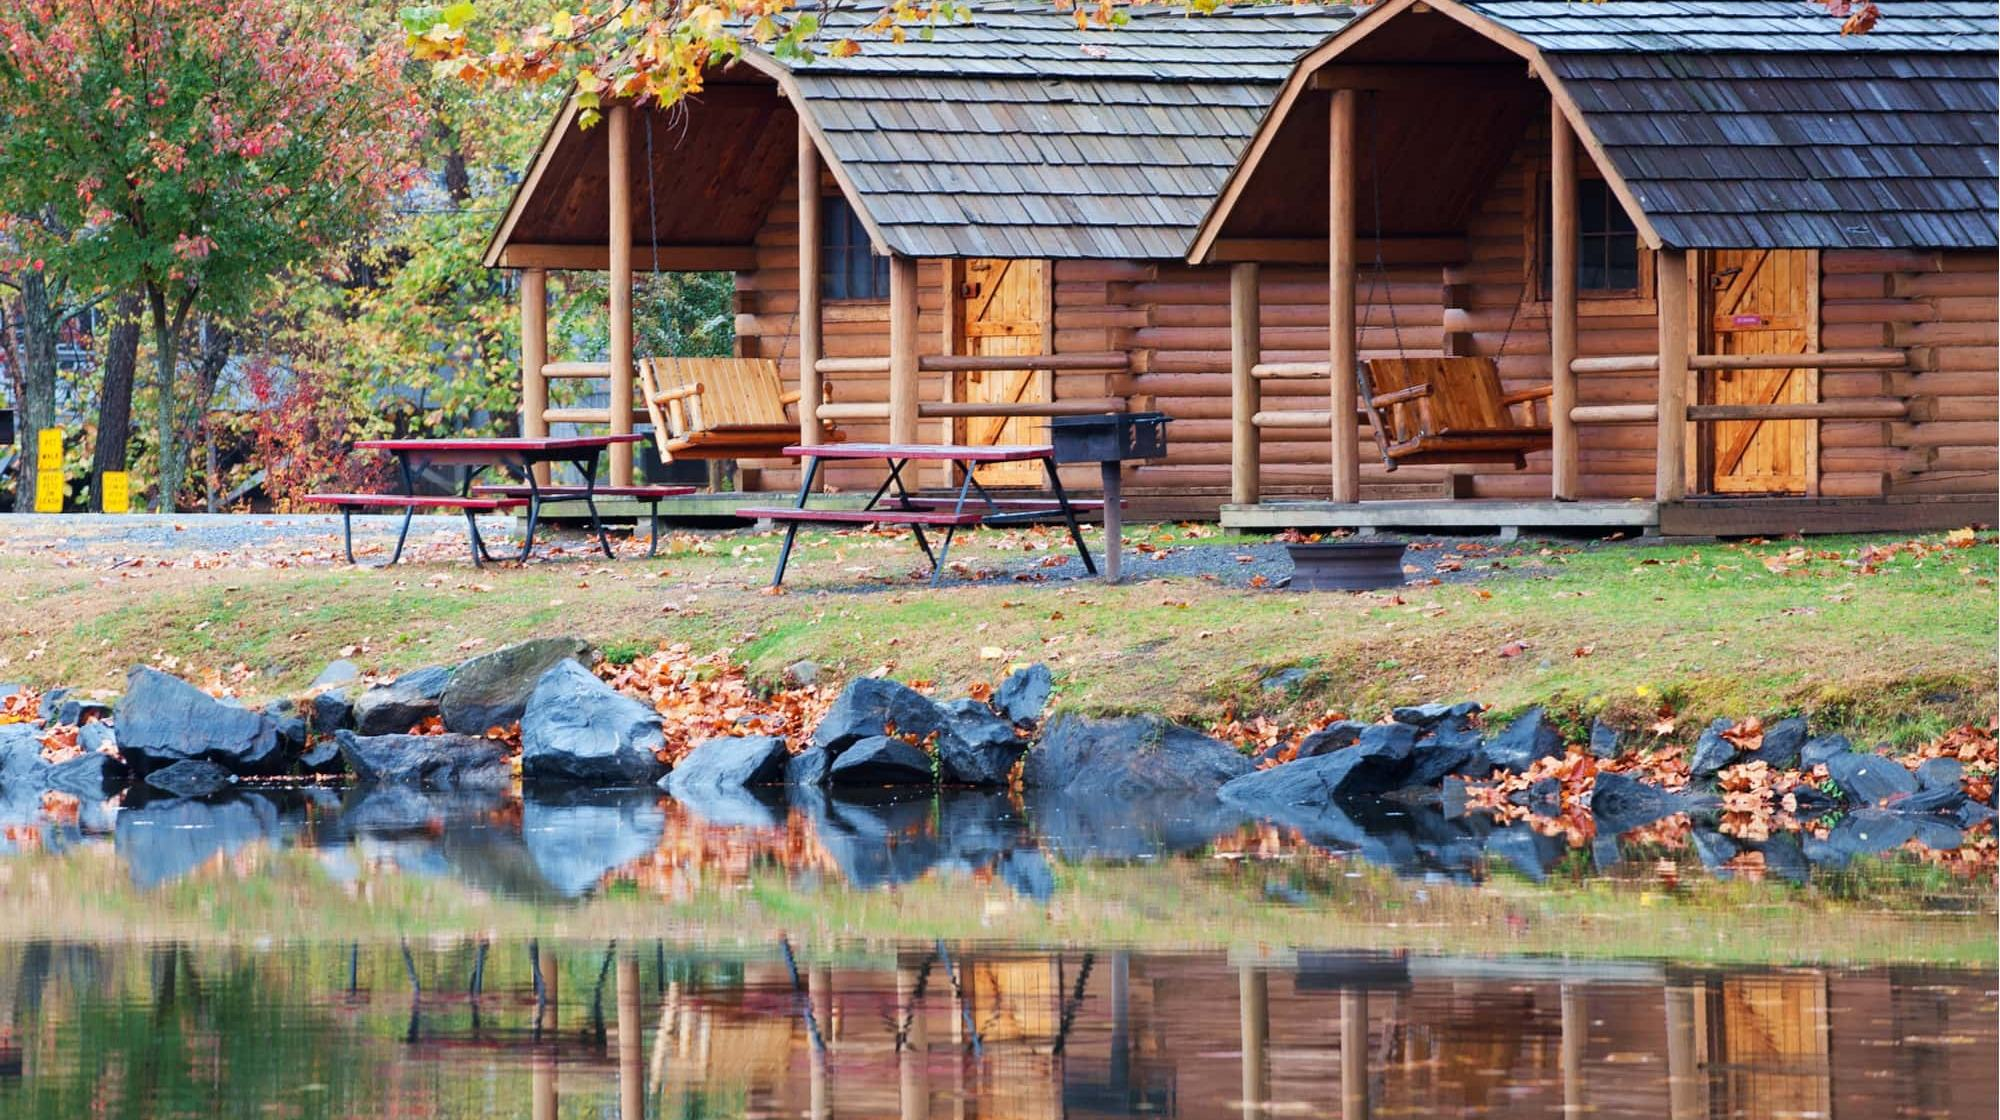 7 Asheville Glamping Spots For Comfortable Camping in The